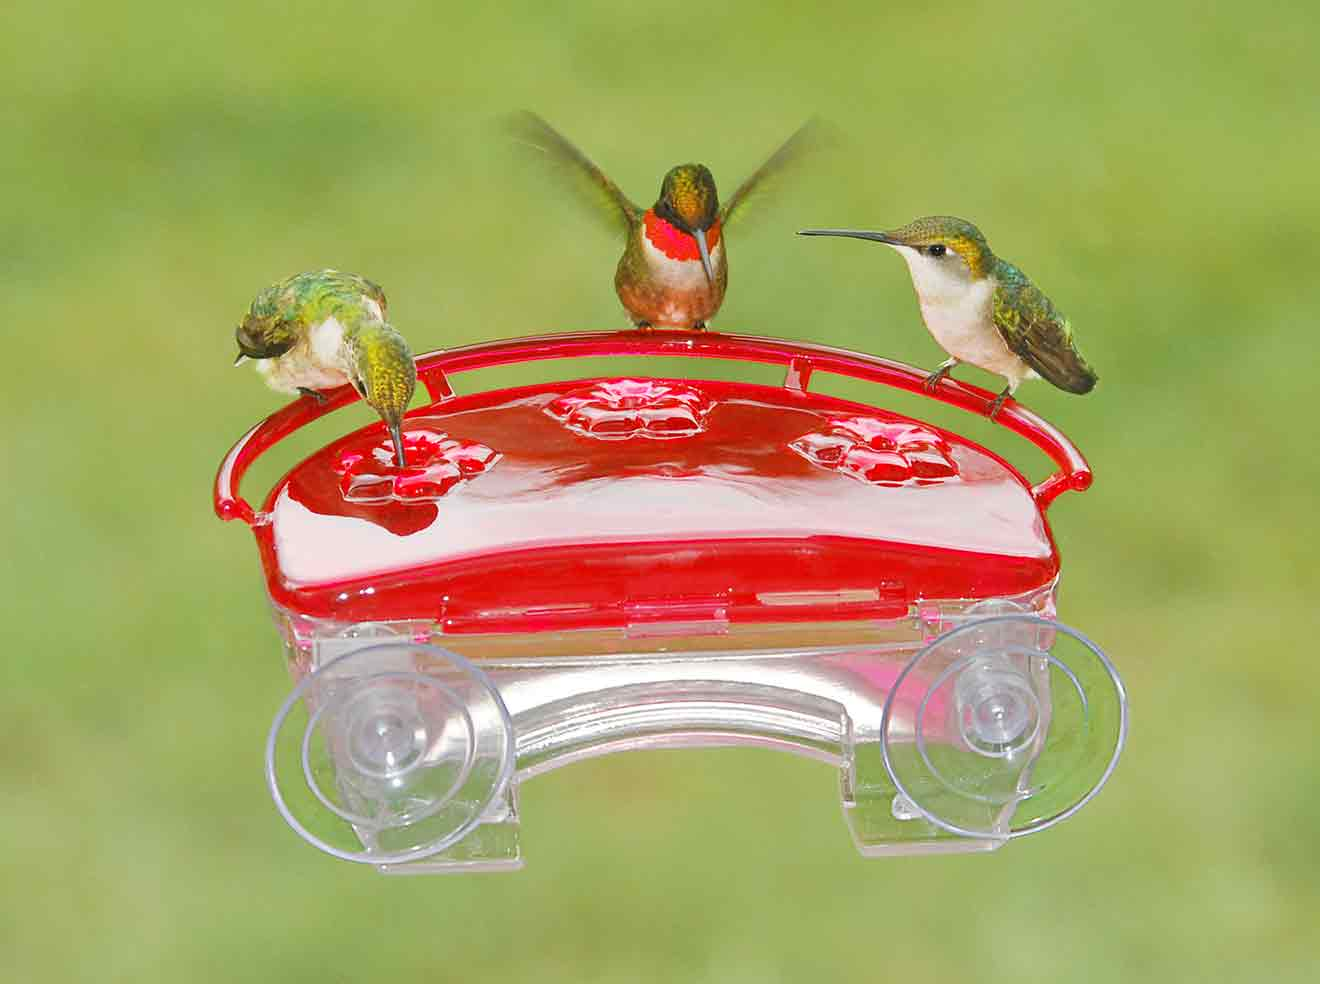 Aspects Jewelbox Hummingbird Feeder, available at The Audubon Shop, the best shop for bird watchers, Madison CT